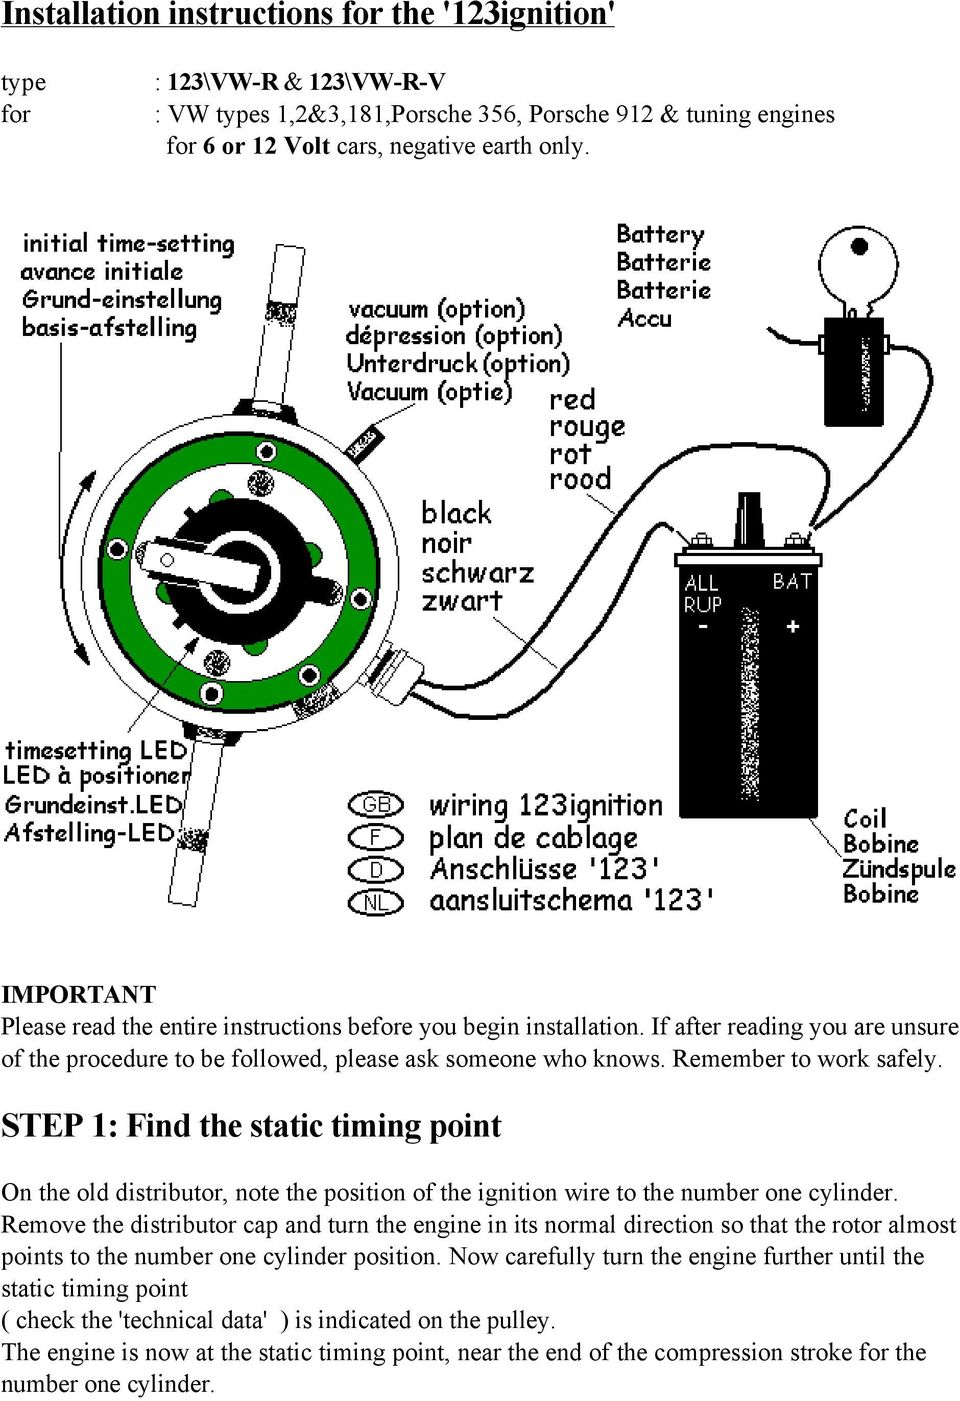 Installation Instructions For The 123ignition Pdf Type 181 Wiring Diagram Step 1 Find Static Timing Point On Old Distributor Note Position